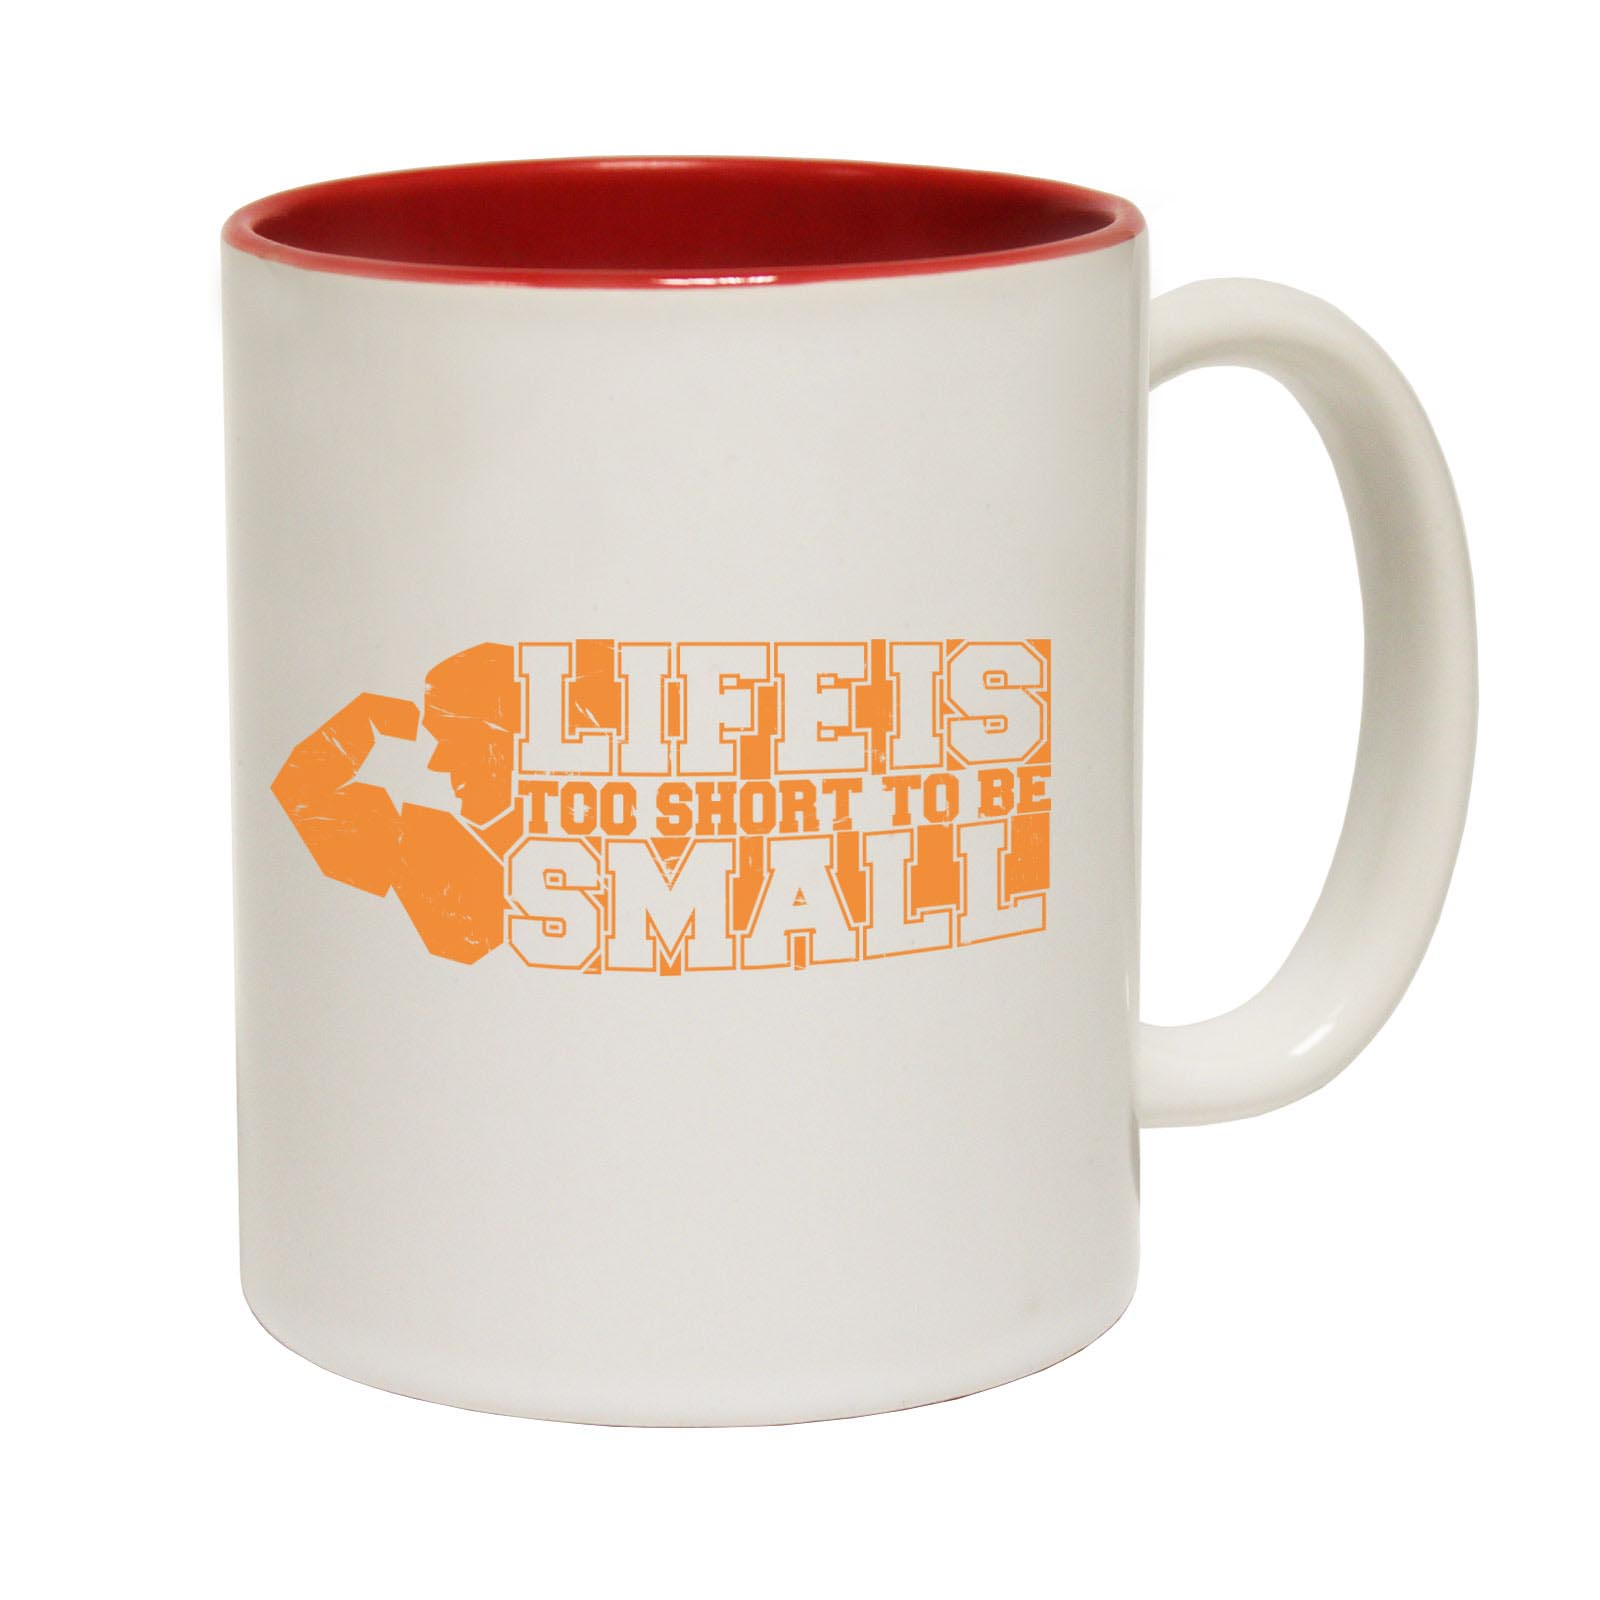 miniature 5 - Funny Coffee Mug Novelty Birthday Gift Swps Life Is Short To Be Small